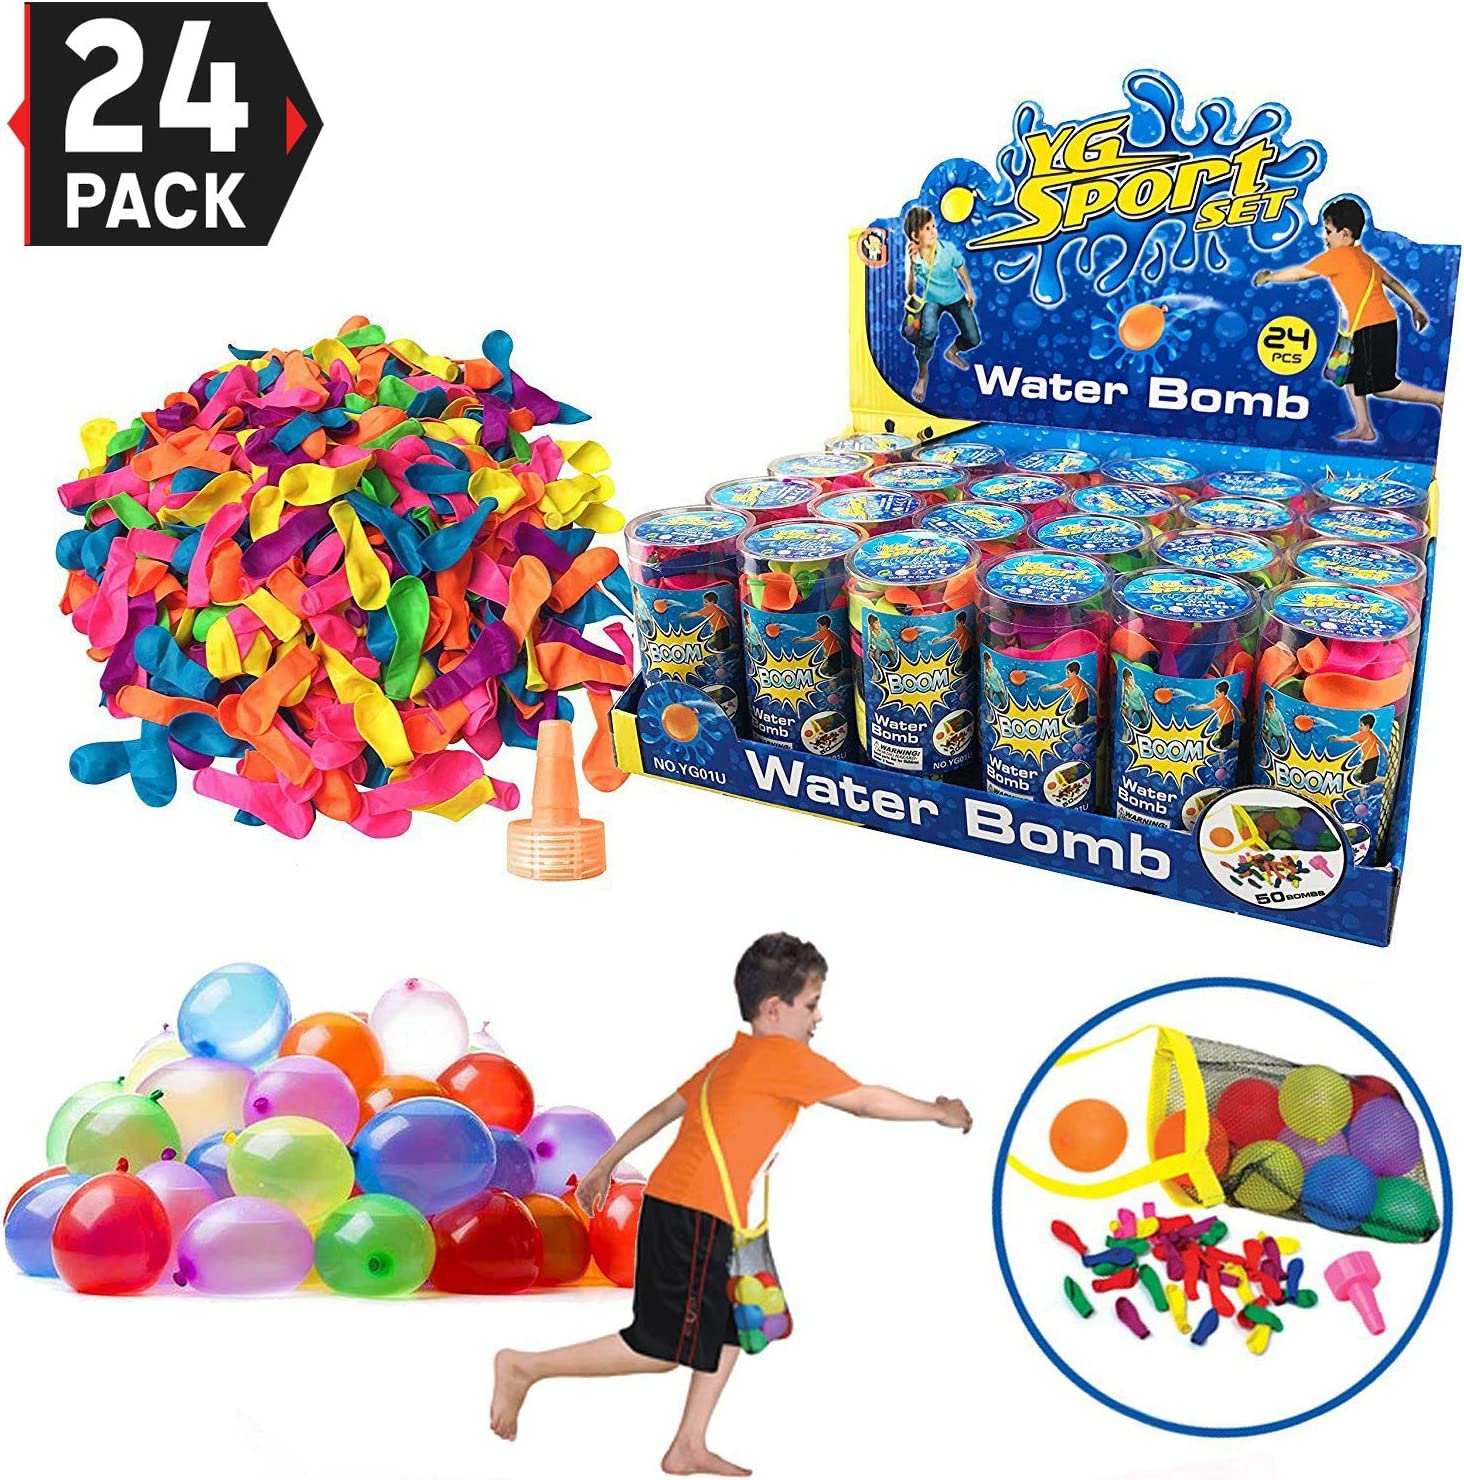 24 Pack - Refill Kits von Latex Water Balloons Bomb - Summer Water Balloon Fight, Party Favors, Sports Spaß für Kids und Adults - Multicolored mit Nozzle und Carry Bag (1200 Count)